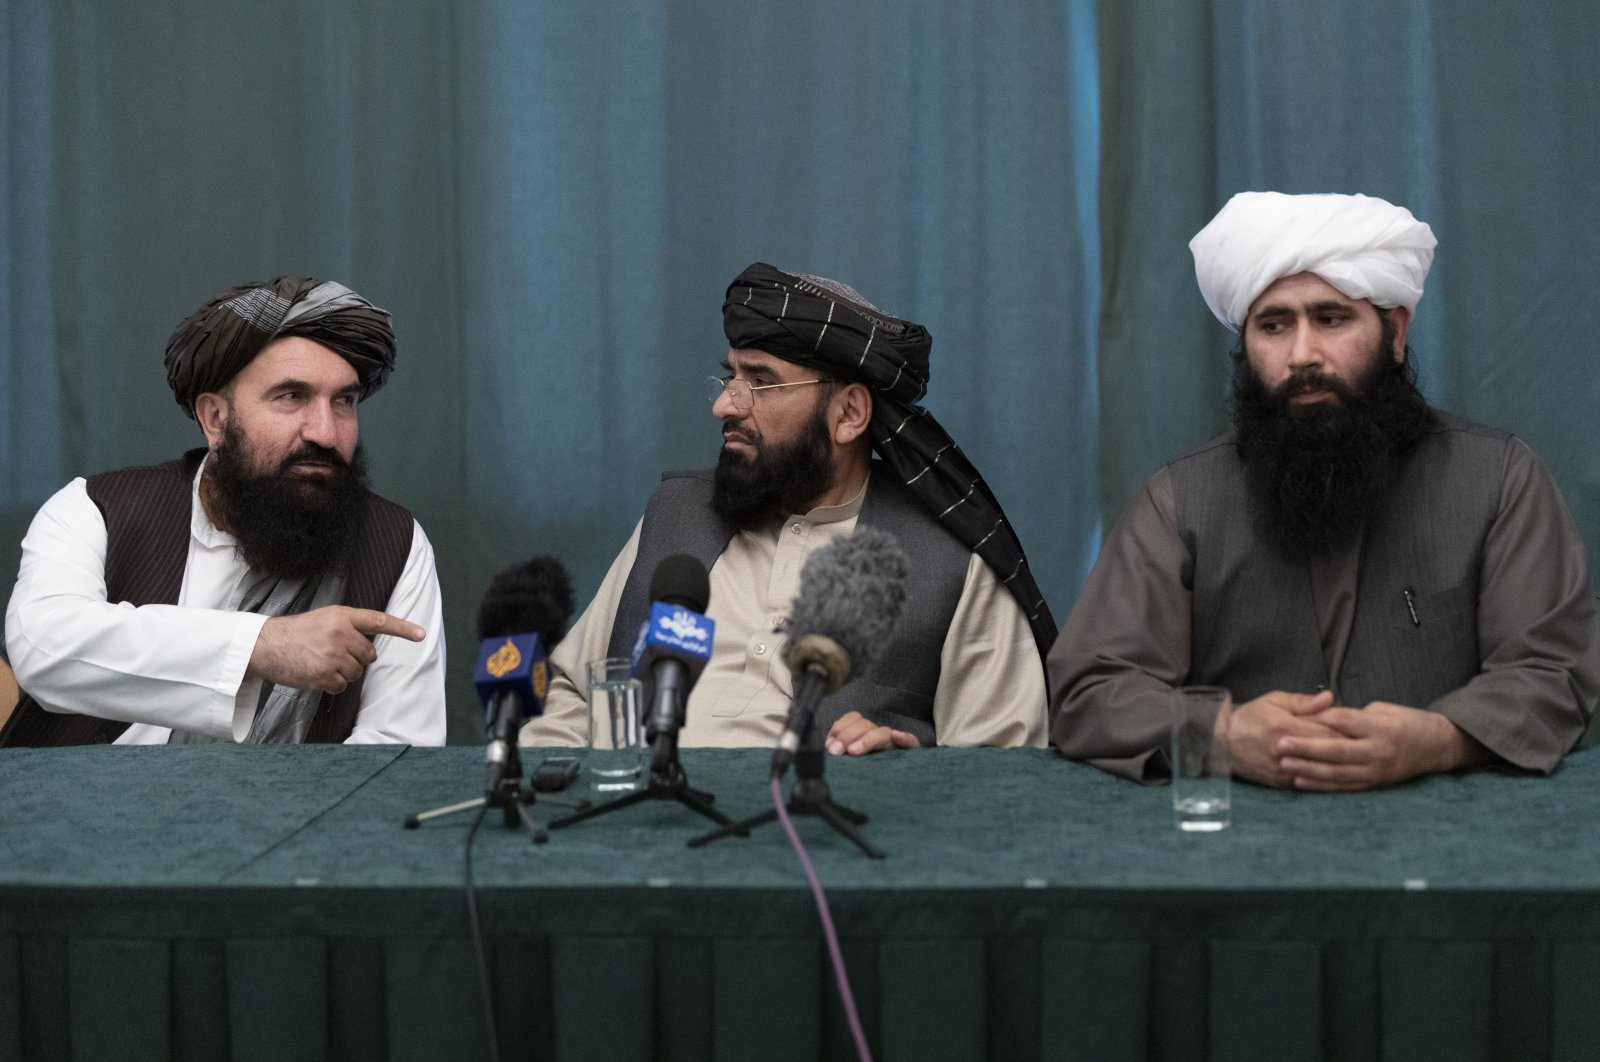 """Members of the Taliban delegation warned Washington against defying the May 1 deadline for the withdrawal of American and NATO troops from Afghanistan promising a """"reaction,"""" which presumably meant stepped up fighting, in a news conference in Moscow, Russia, March 19, 2021. (EPA)"""